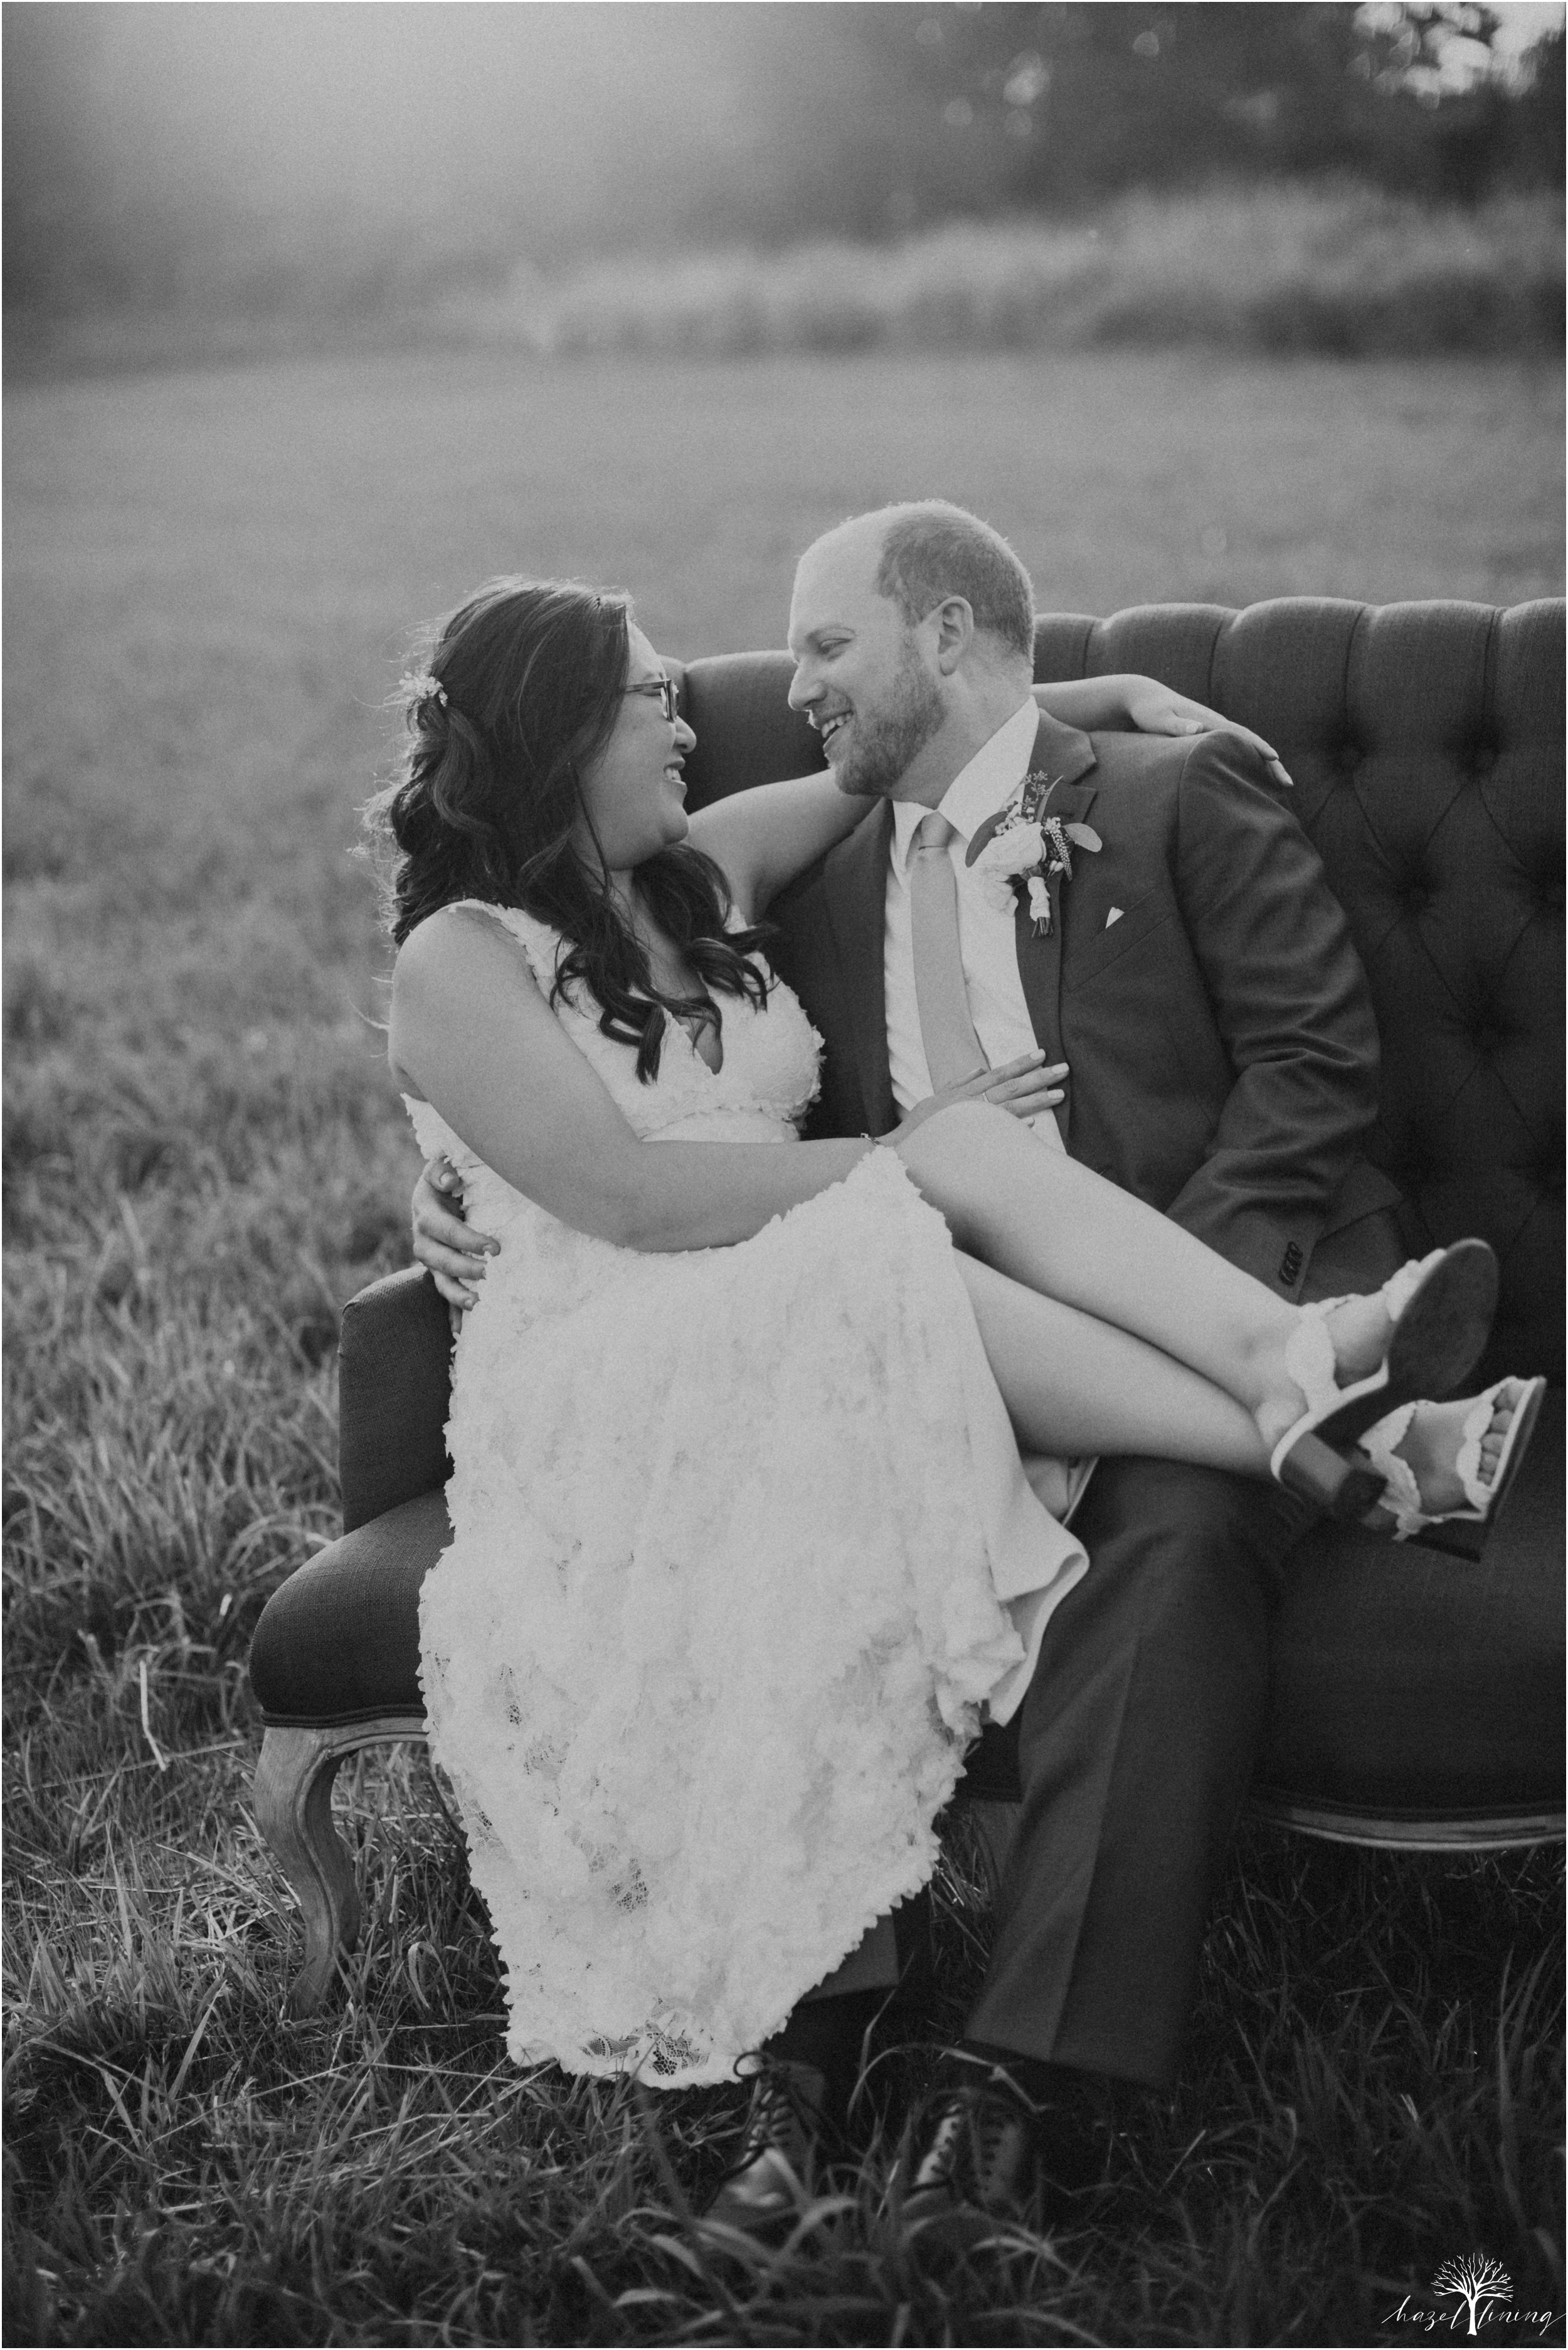 jason-tercha-laura-caruso-the-farm-bakery-and-events-quakertown-pa-summer-wedding-hazel-lining-photography-destination-elopement-wedding-engagement-photography_0113.jpg